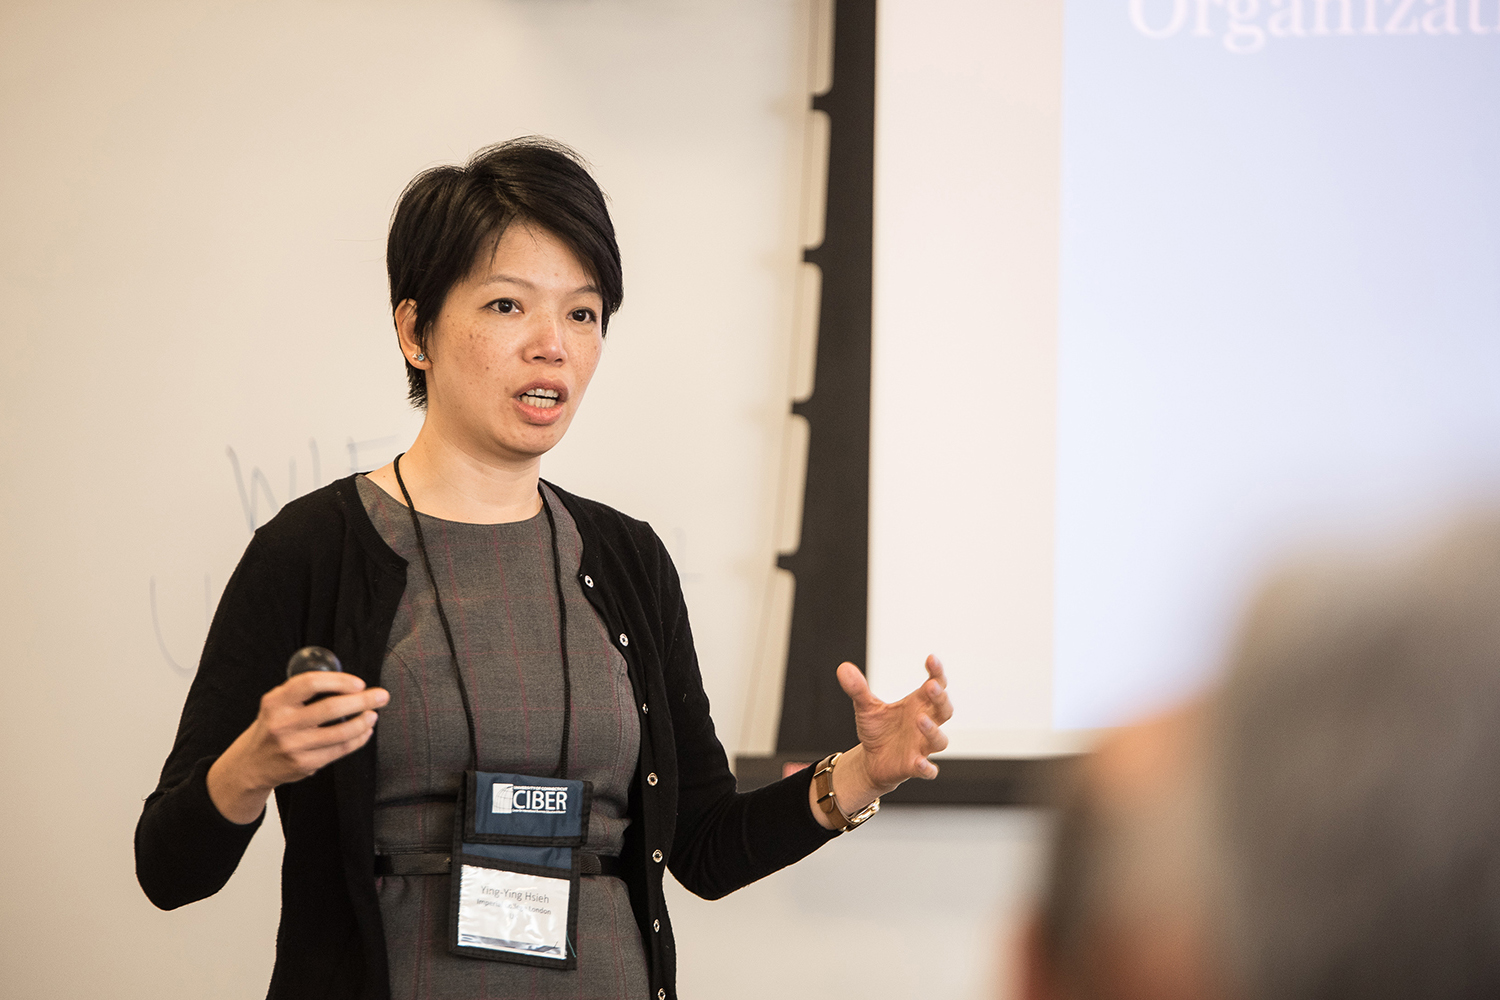 Ying-Ying Hsieh, a professor at Imperial College London, explains her research on reconceptualizing organizational governance at UConn's Blockchain Technology & Organizations Research Symposium on Aug. 14 in Stamford. The event drew two dozen faculty and researchers from around the globe. (Nathan Oldham/UConn photo)